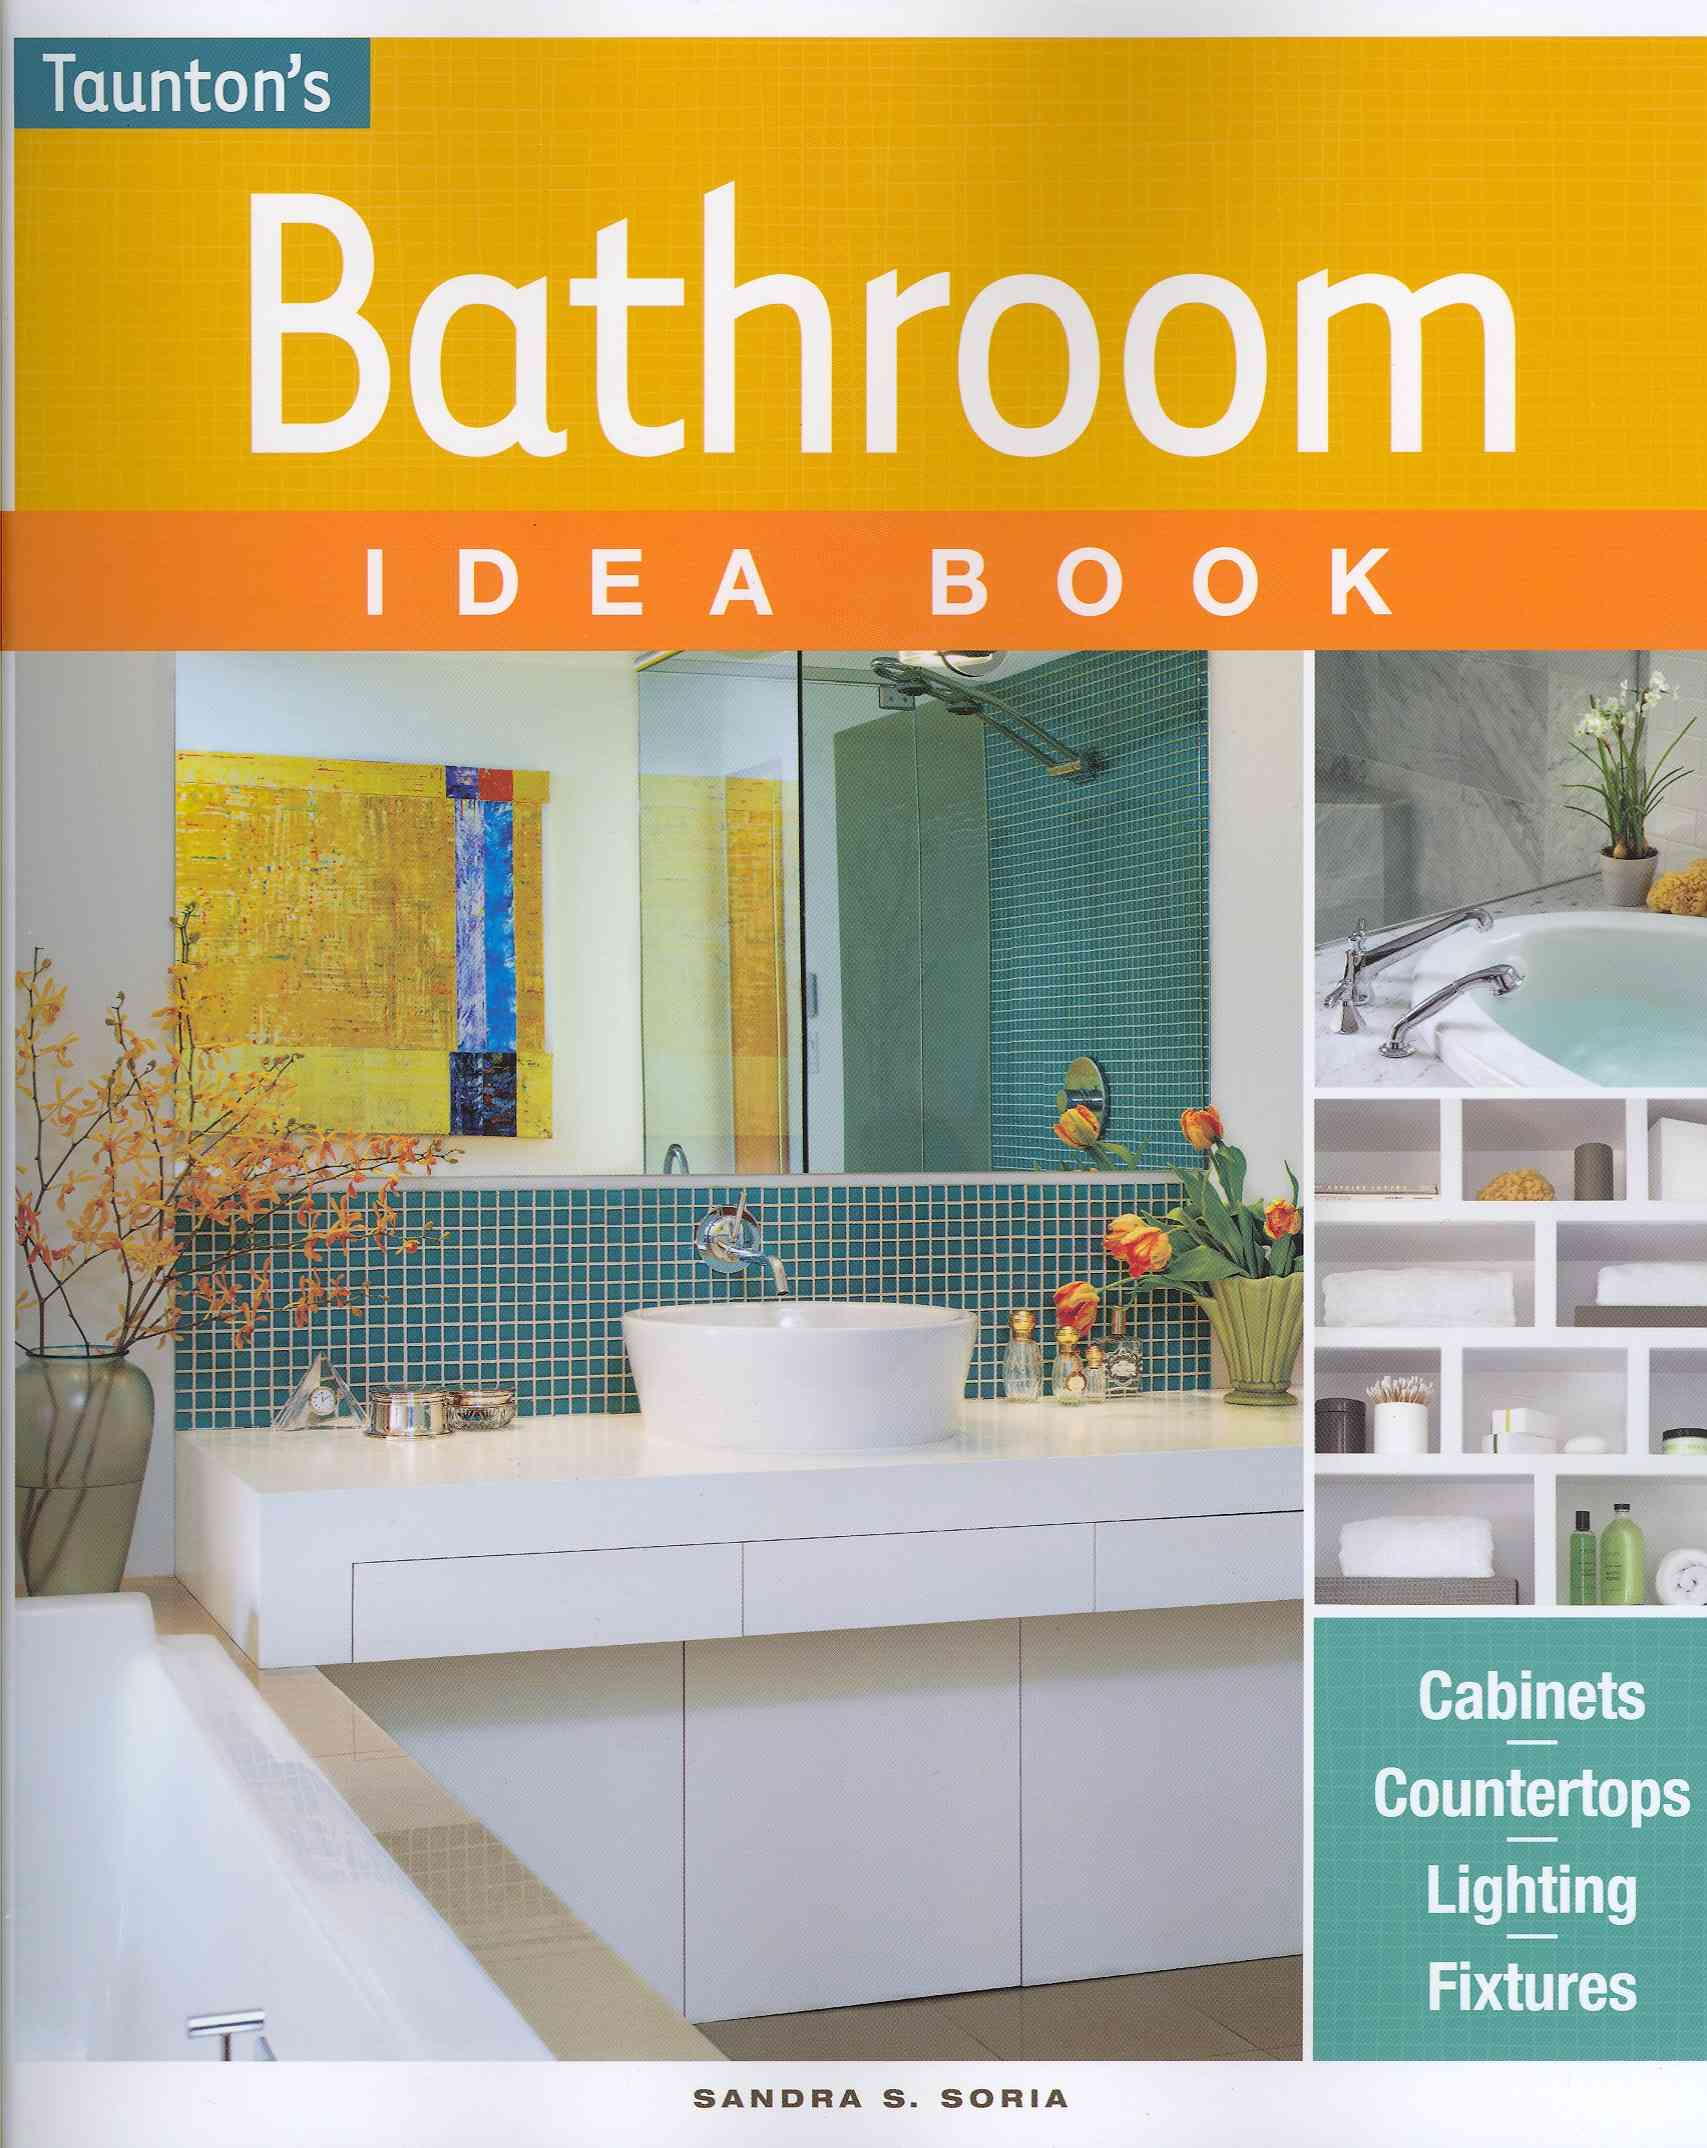 Bathroom Idea Book By Soria, Sandra S.